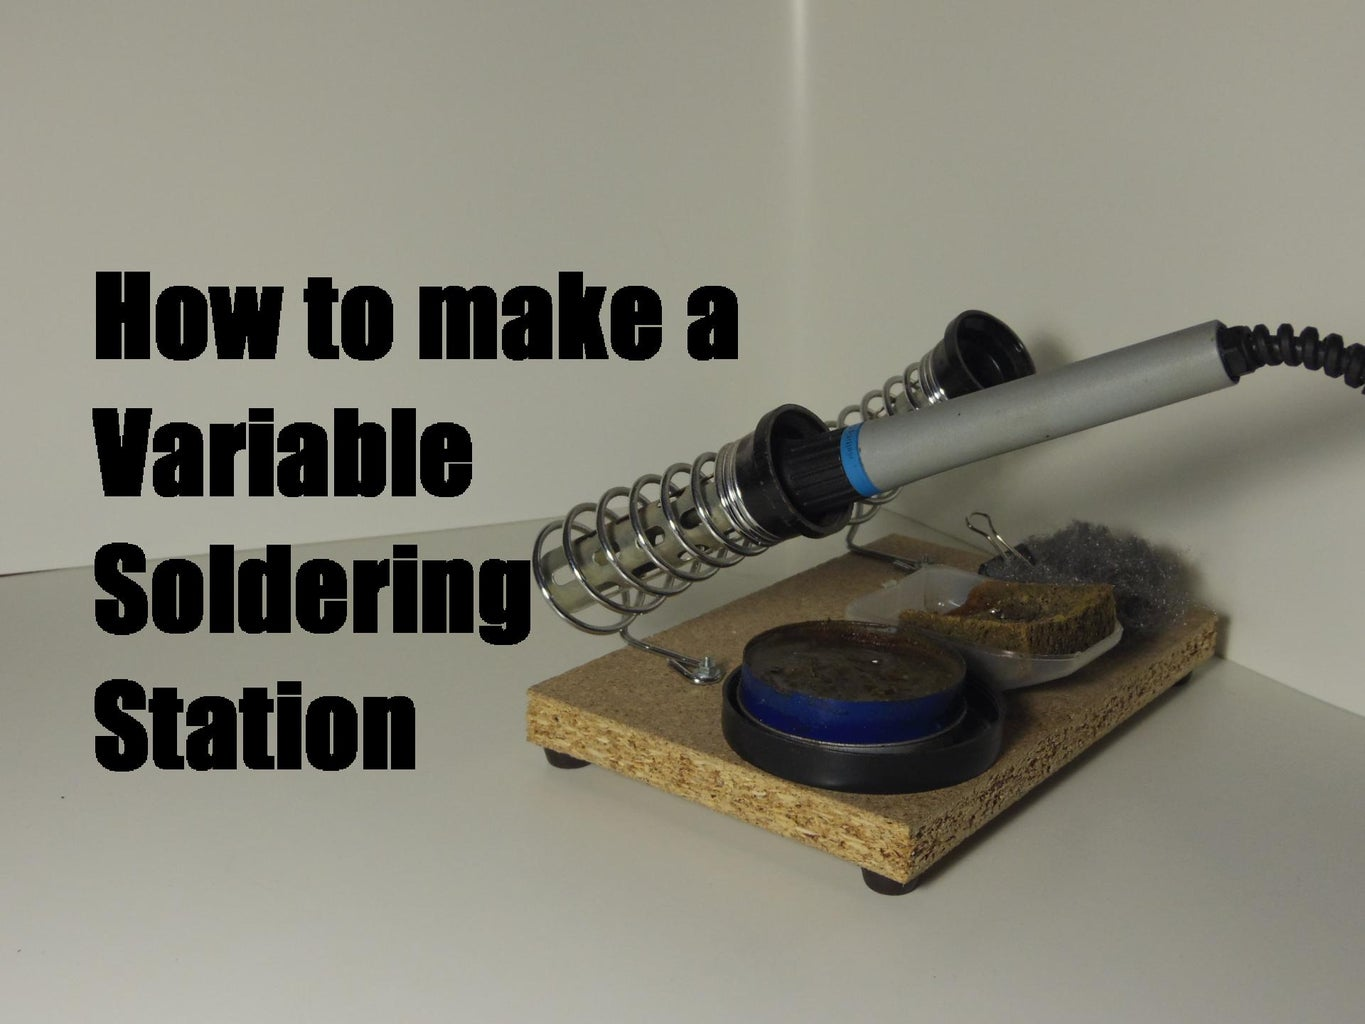 How to Make a Variable Soldering Station